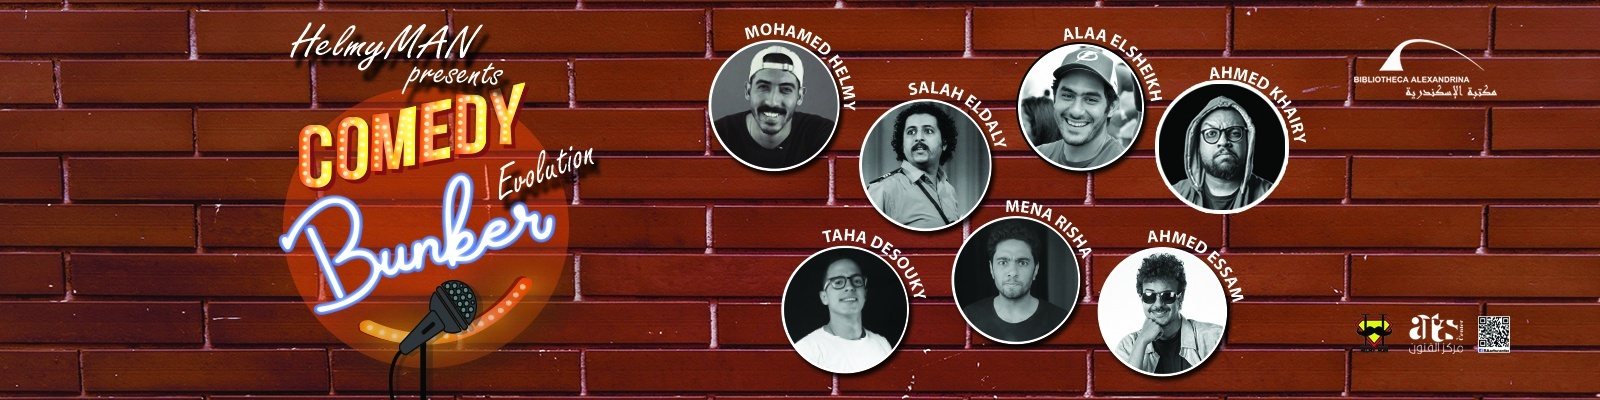 Standup Comedy by Mohamed Helmy